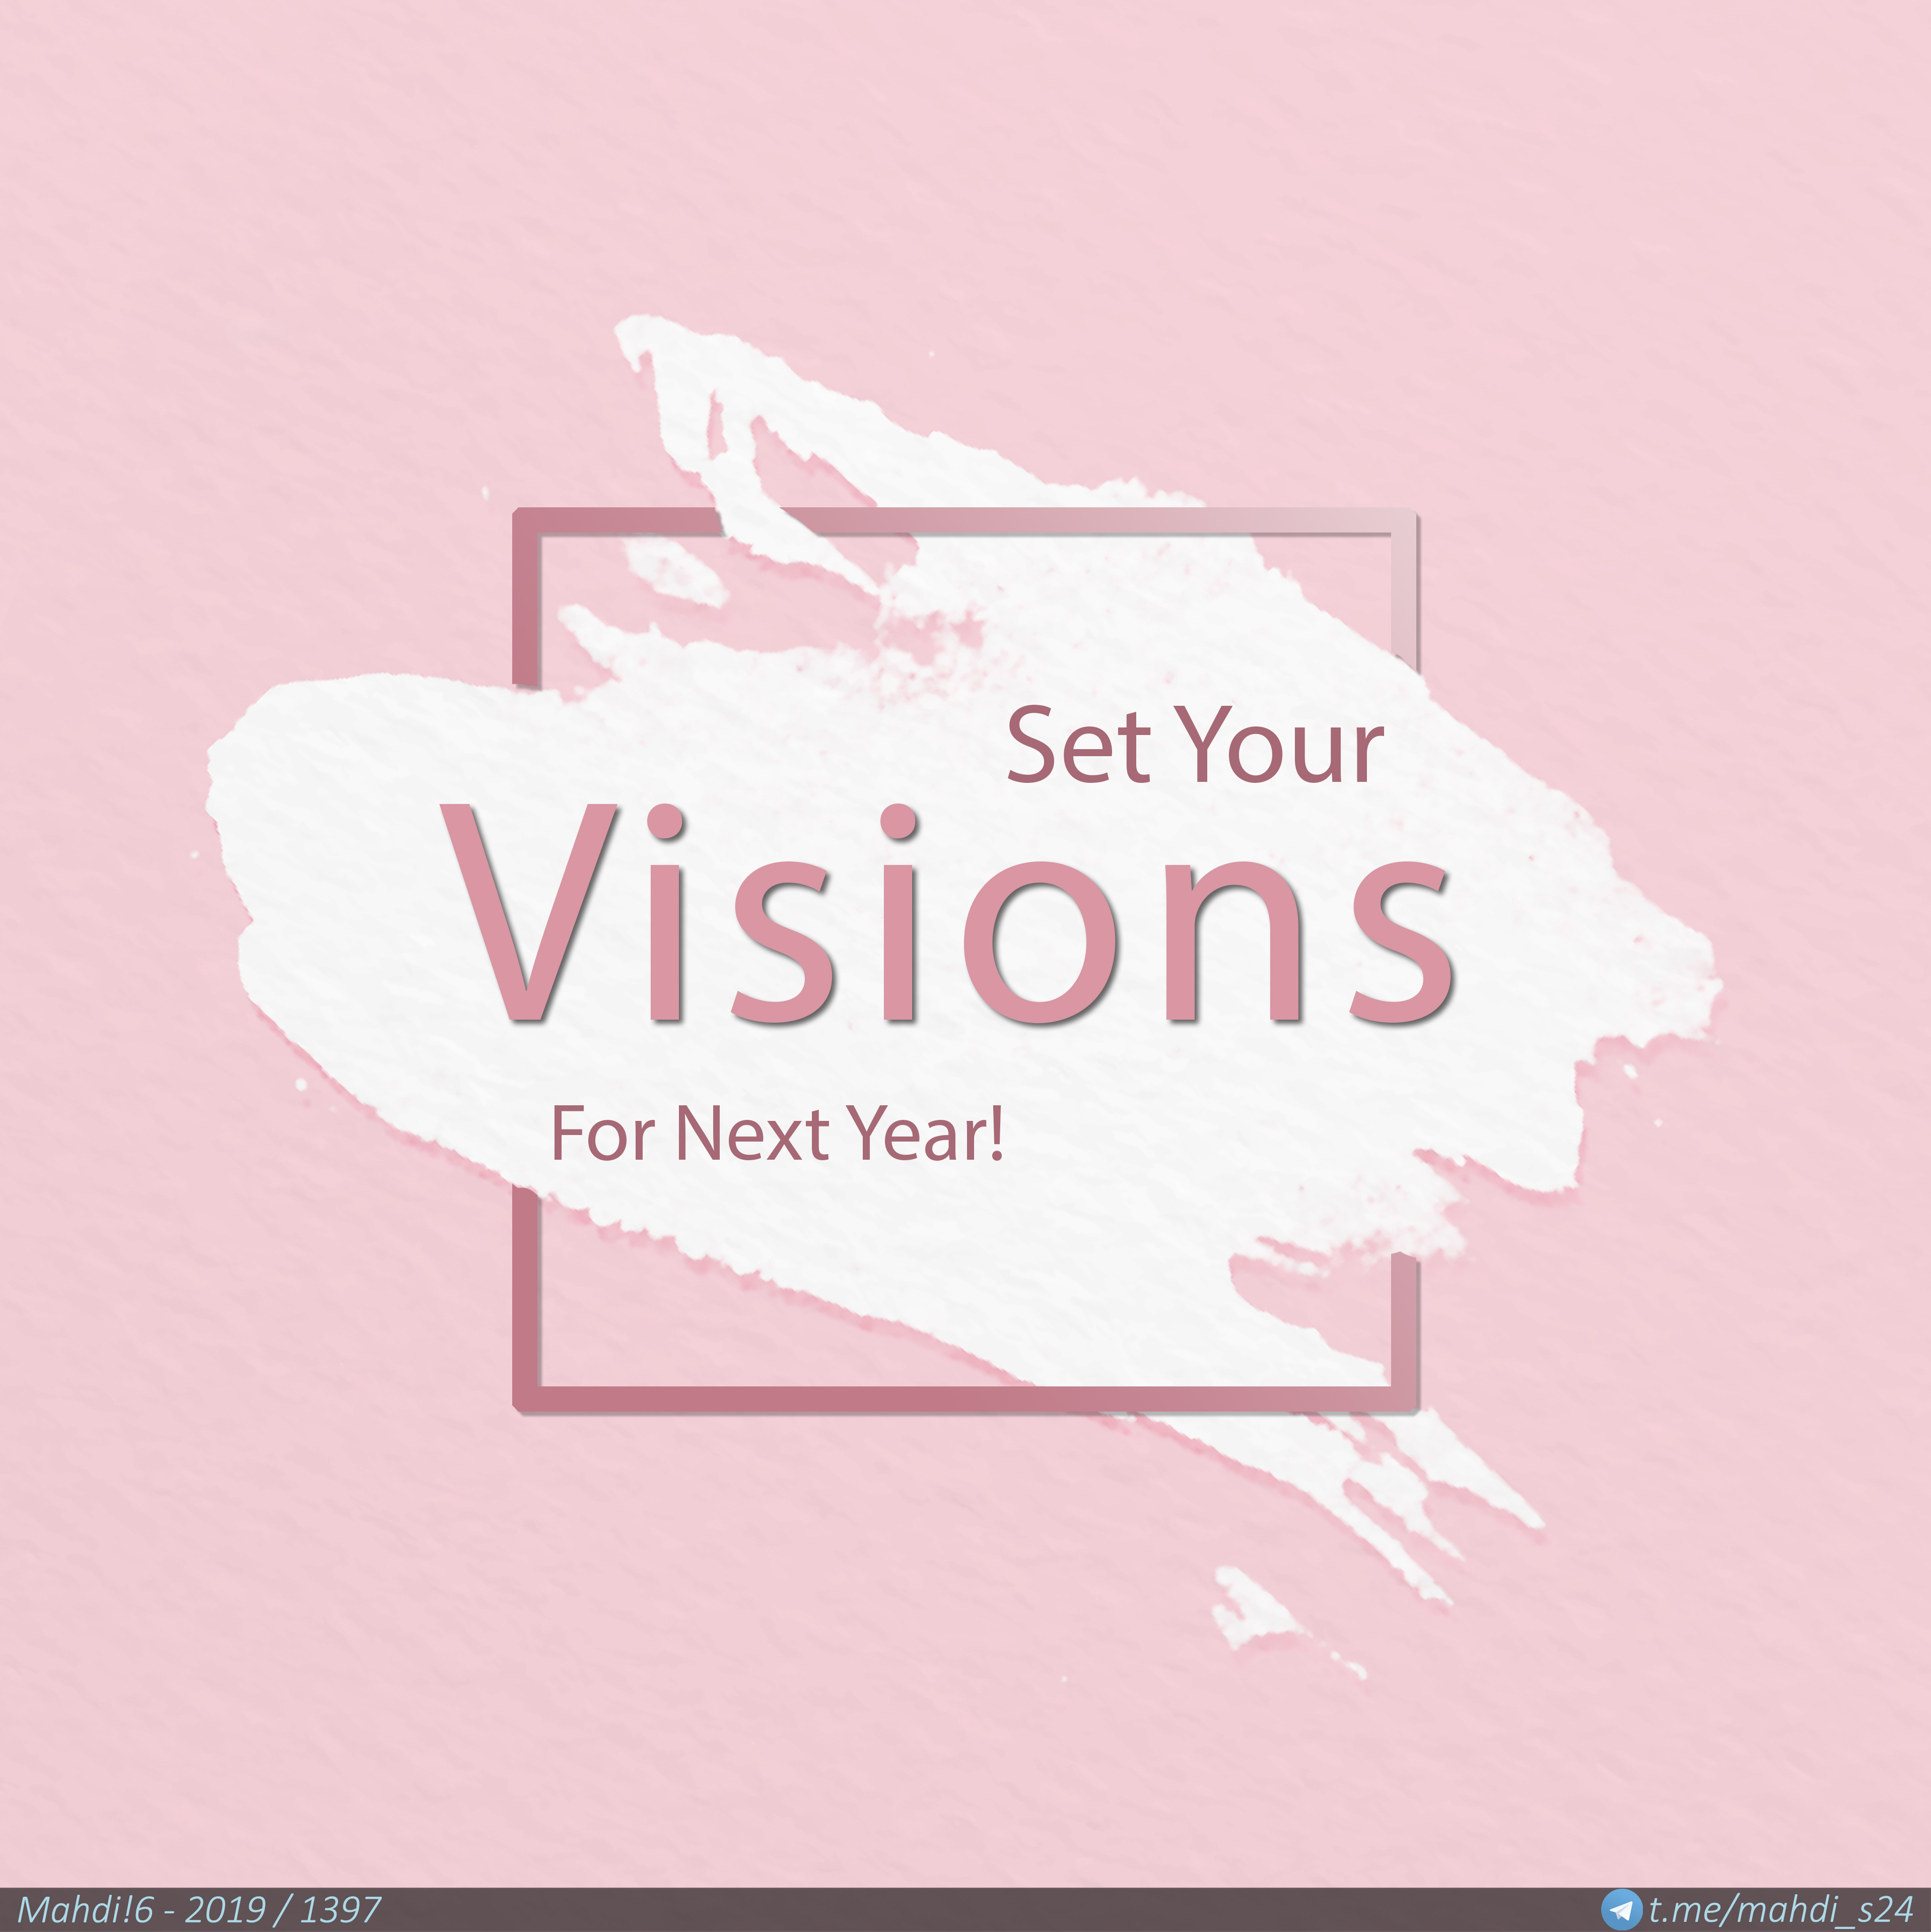 Set Your Visions For Next Year!